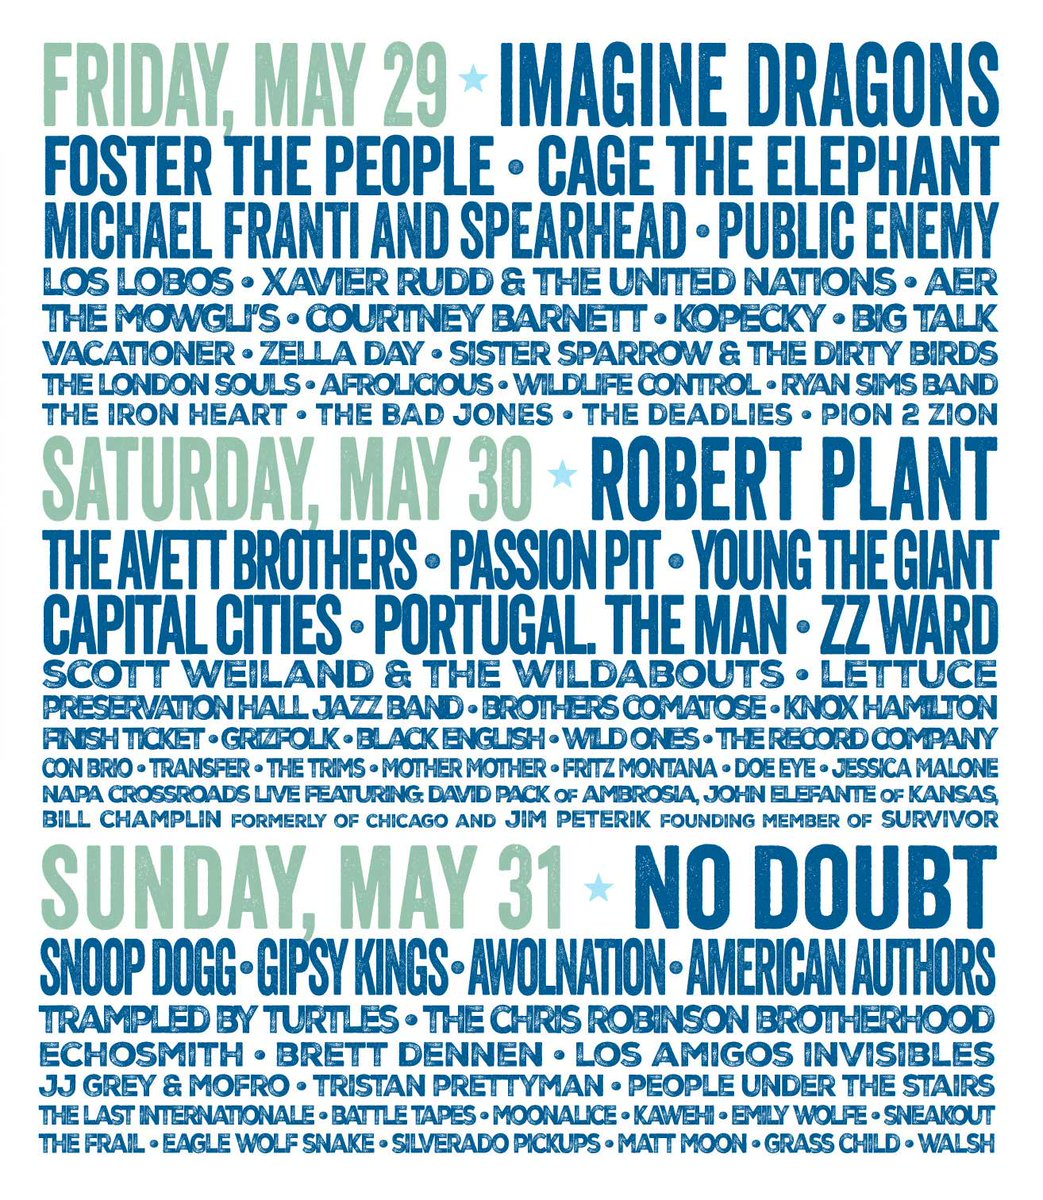 MT @MusicSF: @BottleRockNapa has announced its daily schedule. http://t.co/VdESzcxTSx http://t.co/ryHmmqj03N - @Moonalice on Sun. 31!